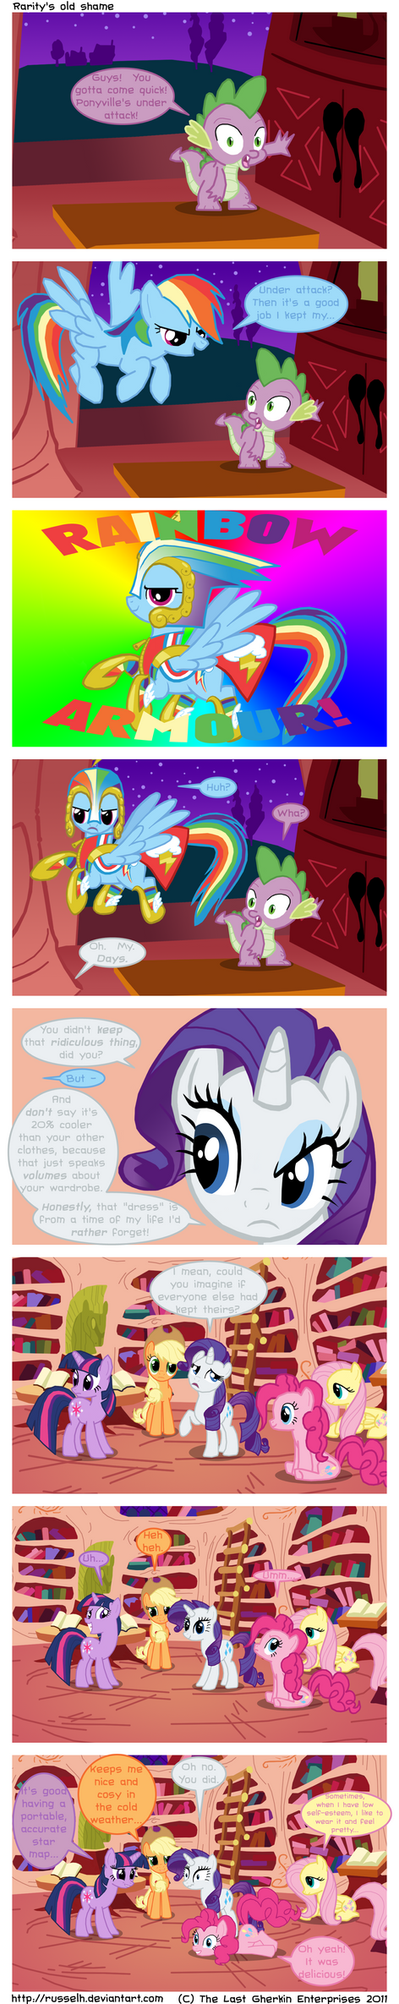 Rarity's old shame by TheLastGherkin